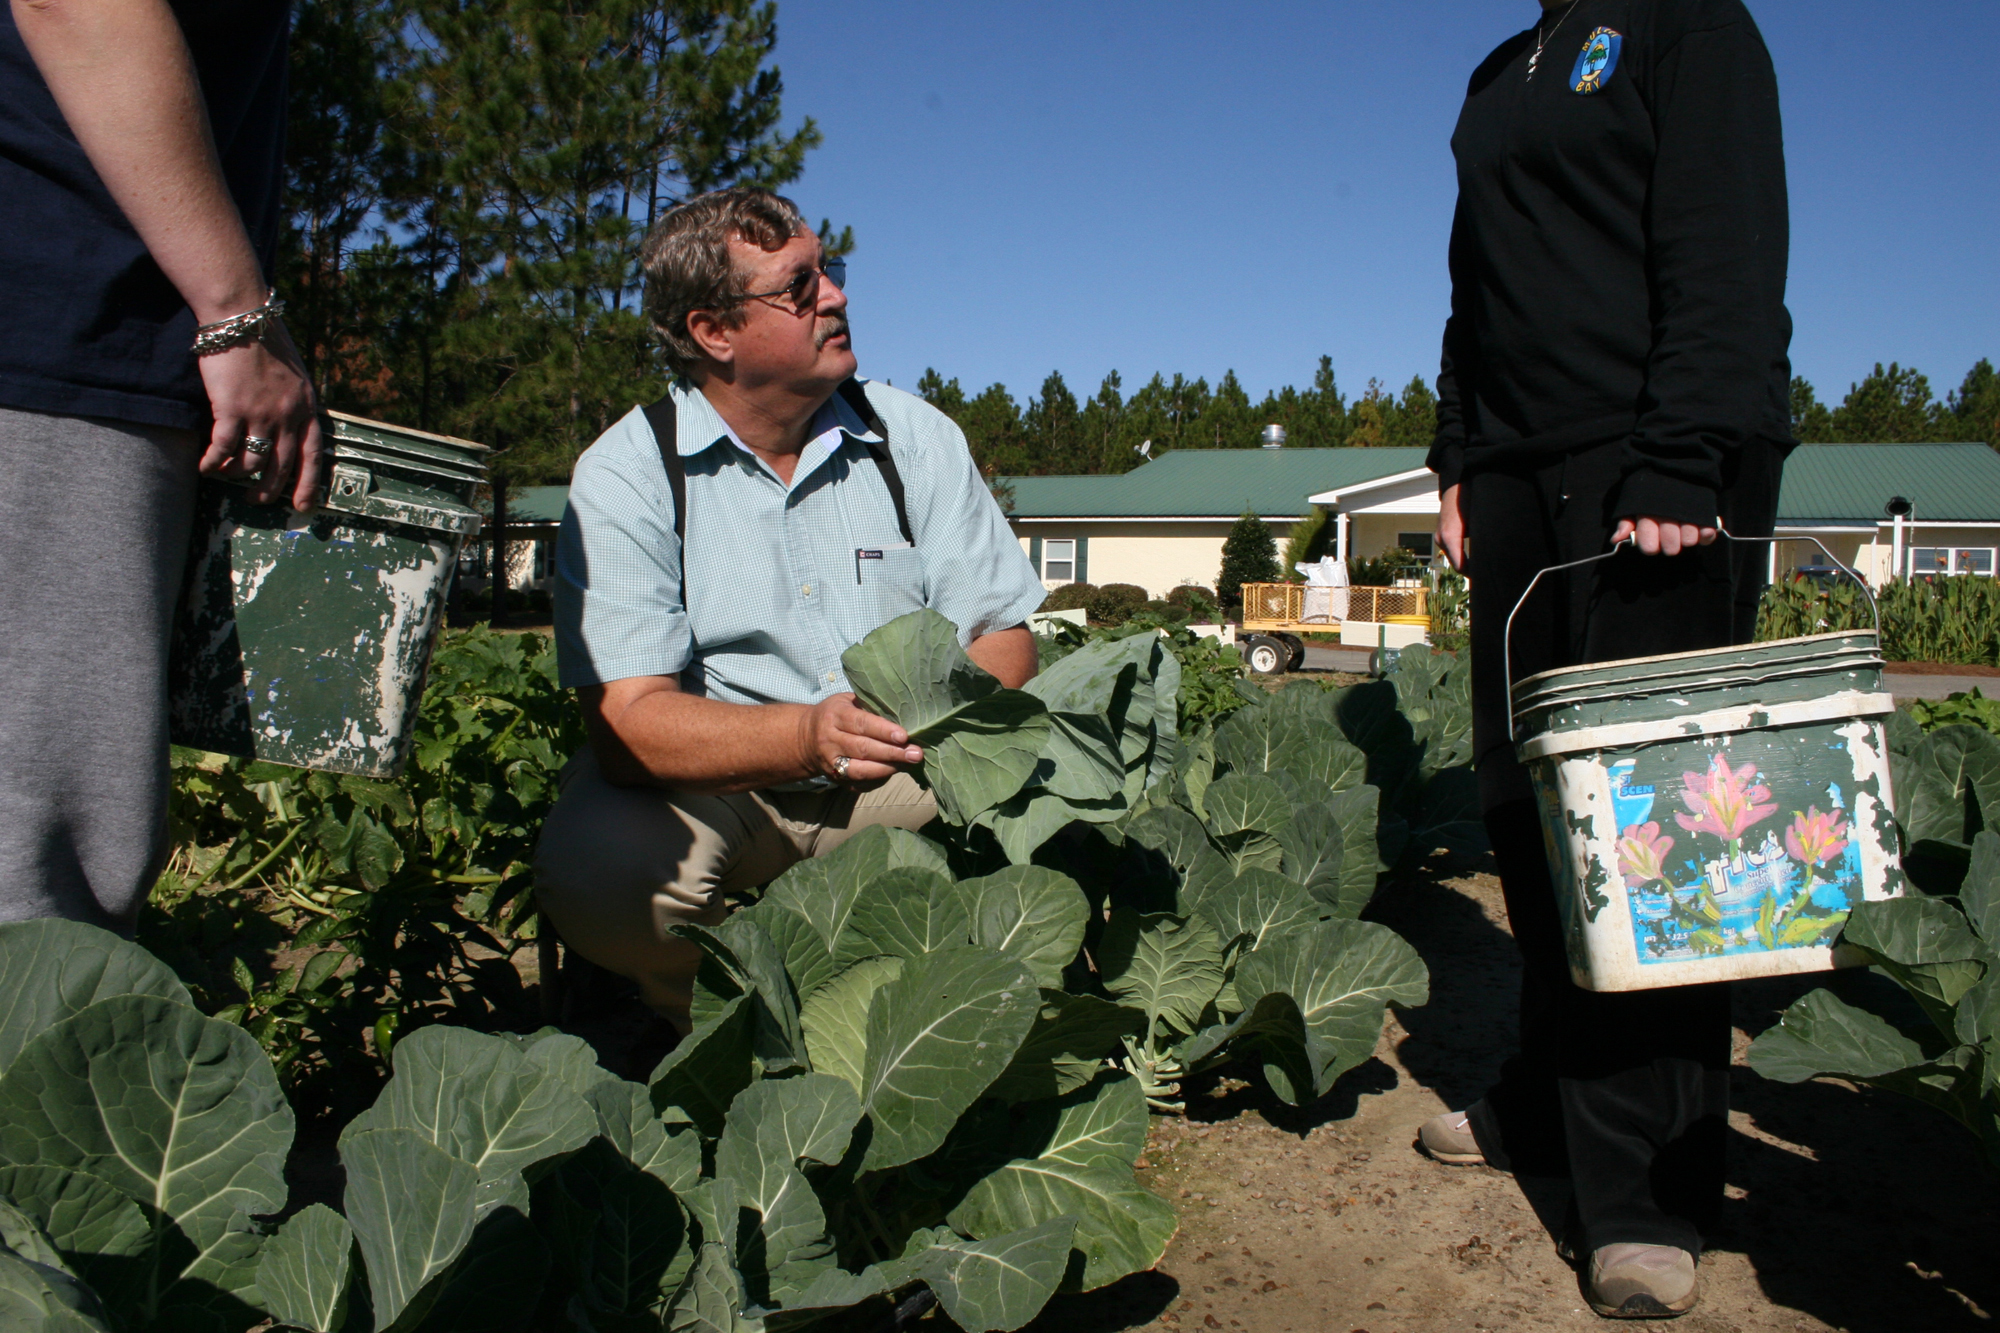 Johnny Whidden, Brooks County Extension coordinator, works on a vegetable garden with residents at Bridges of Hope residential alcohol and drug rehabilitation center.